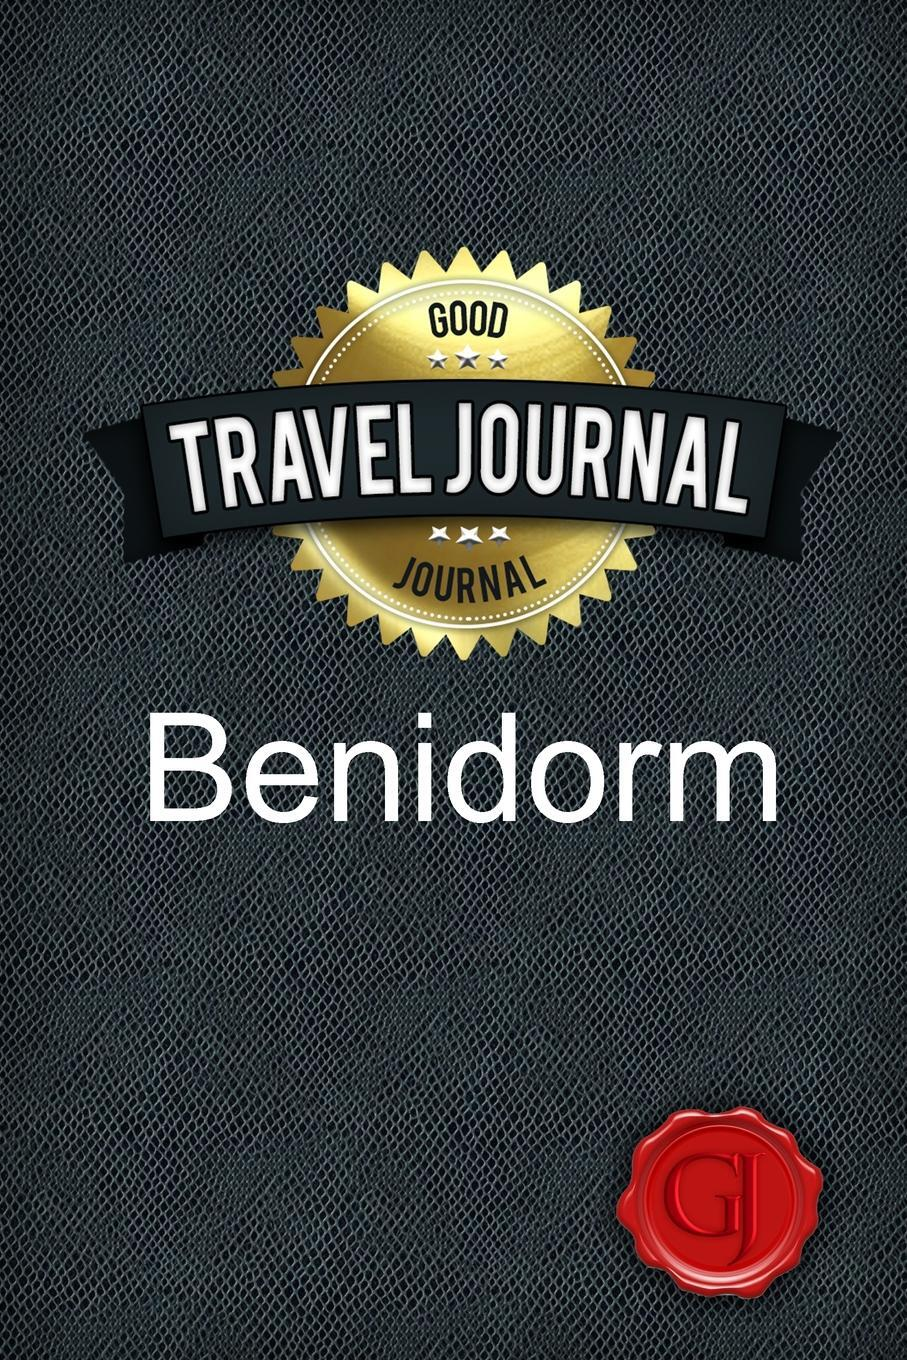 Travel Journal Benidorm. Good Journal